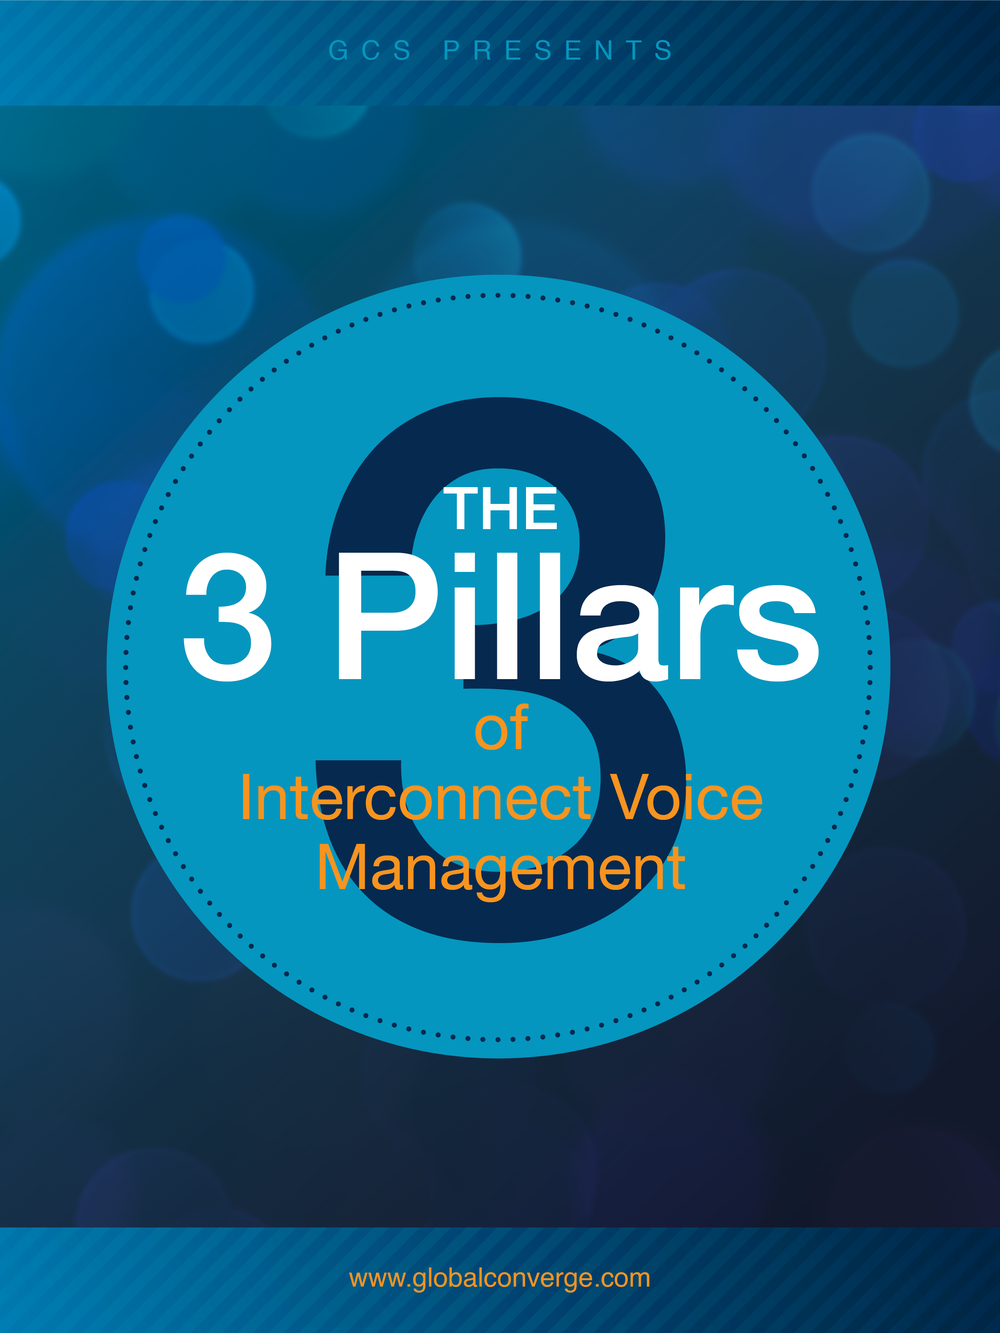 <p><strong>The 3 Pillars</strong>of Interconnect Voice Management</p>